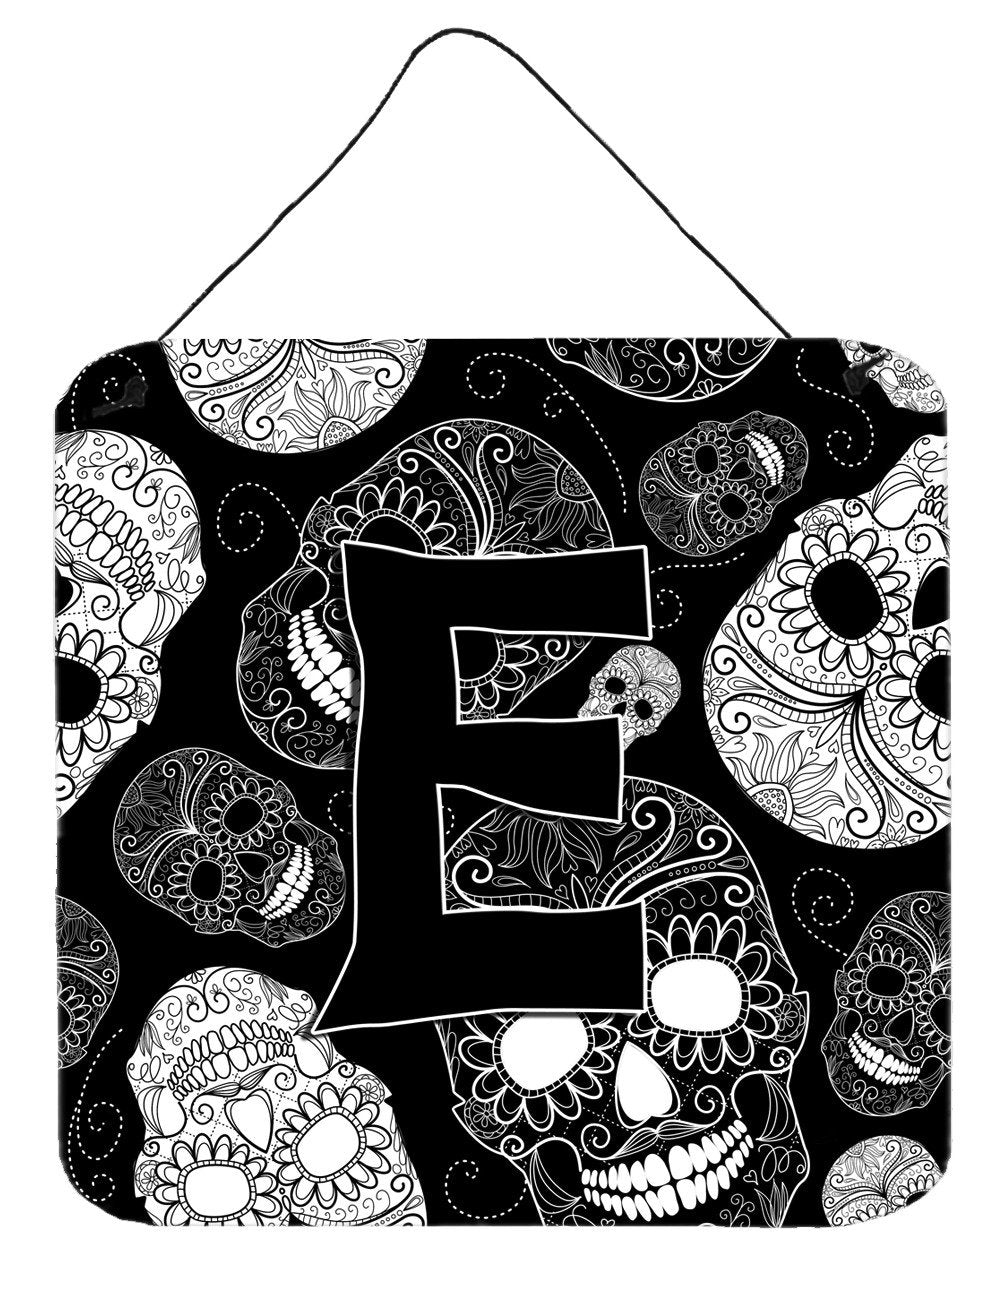 Letter E Day of the Dead Skulls Black Wall or Door Hanging Prints CJ2008-EDS66 by Caroline's Treasures